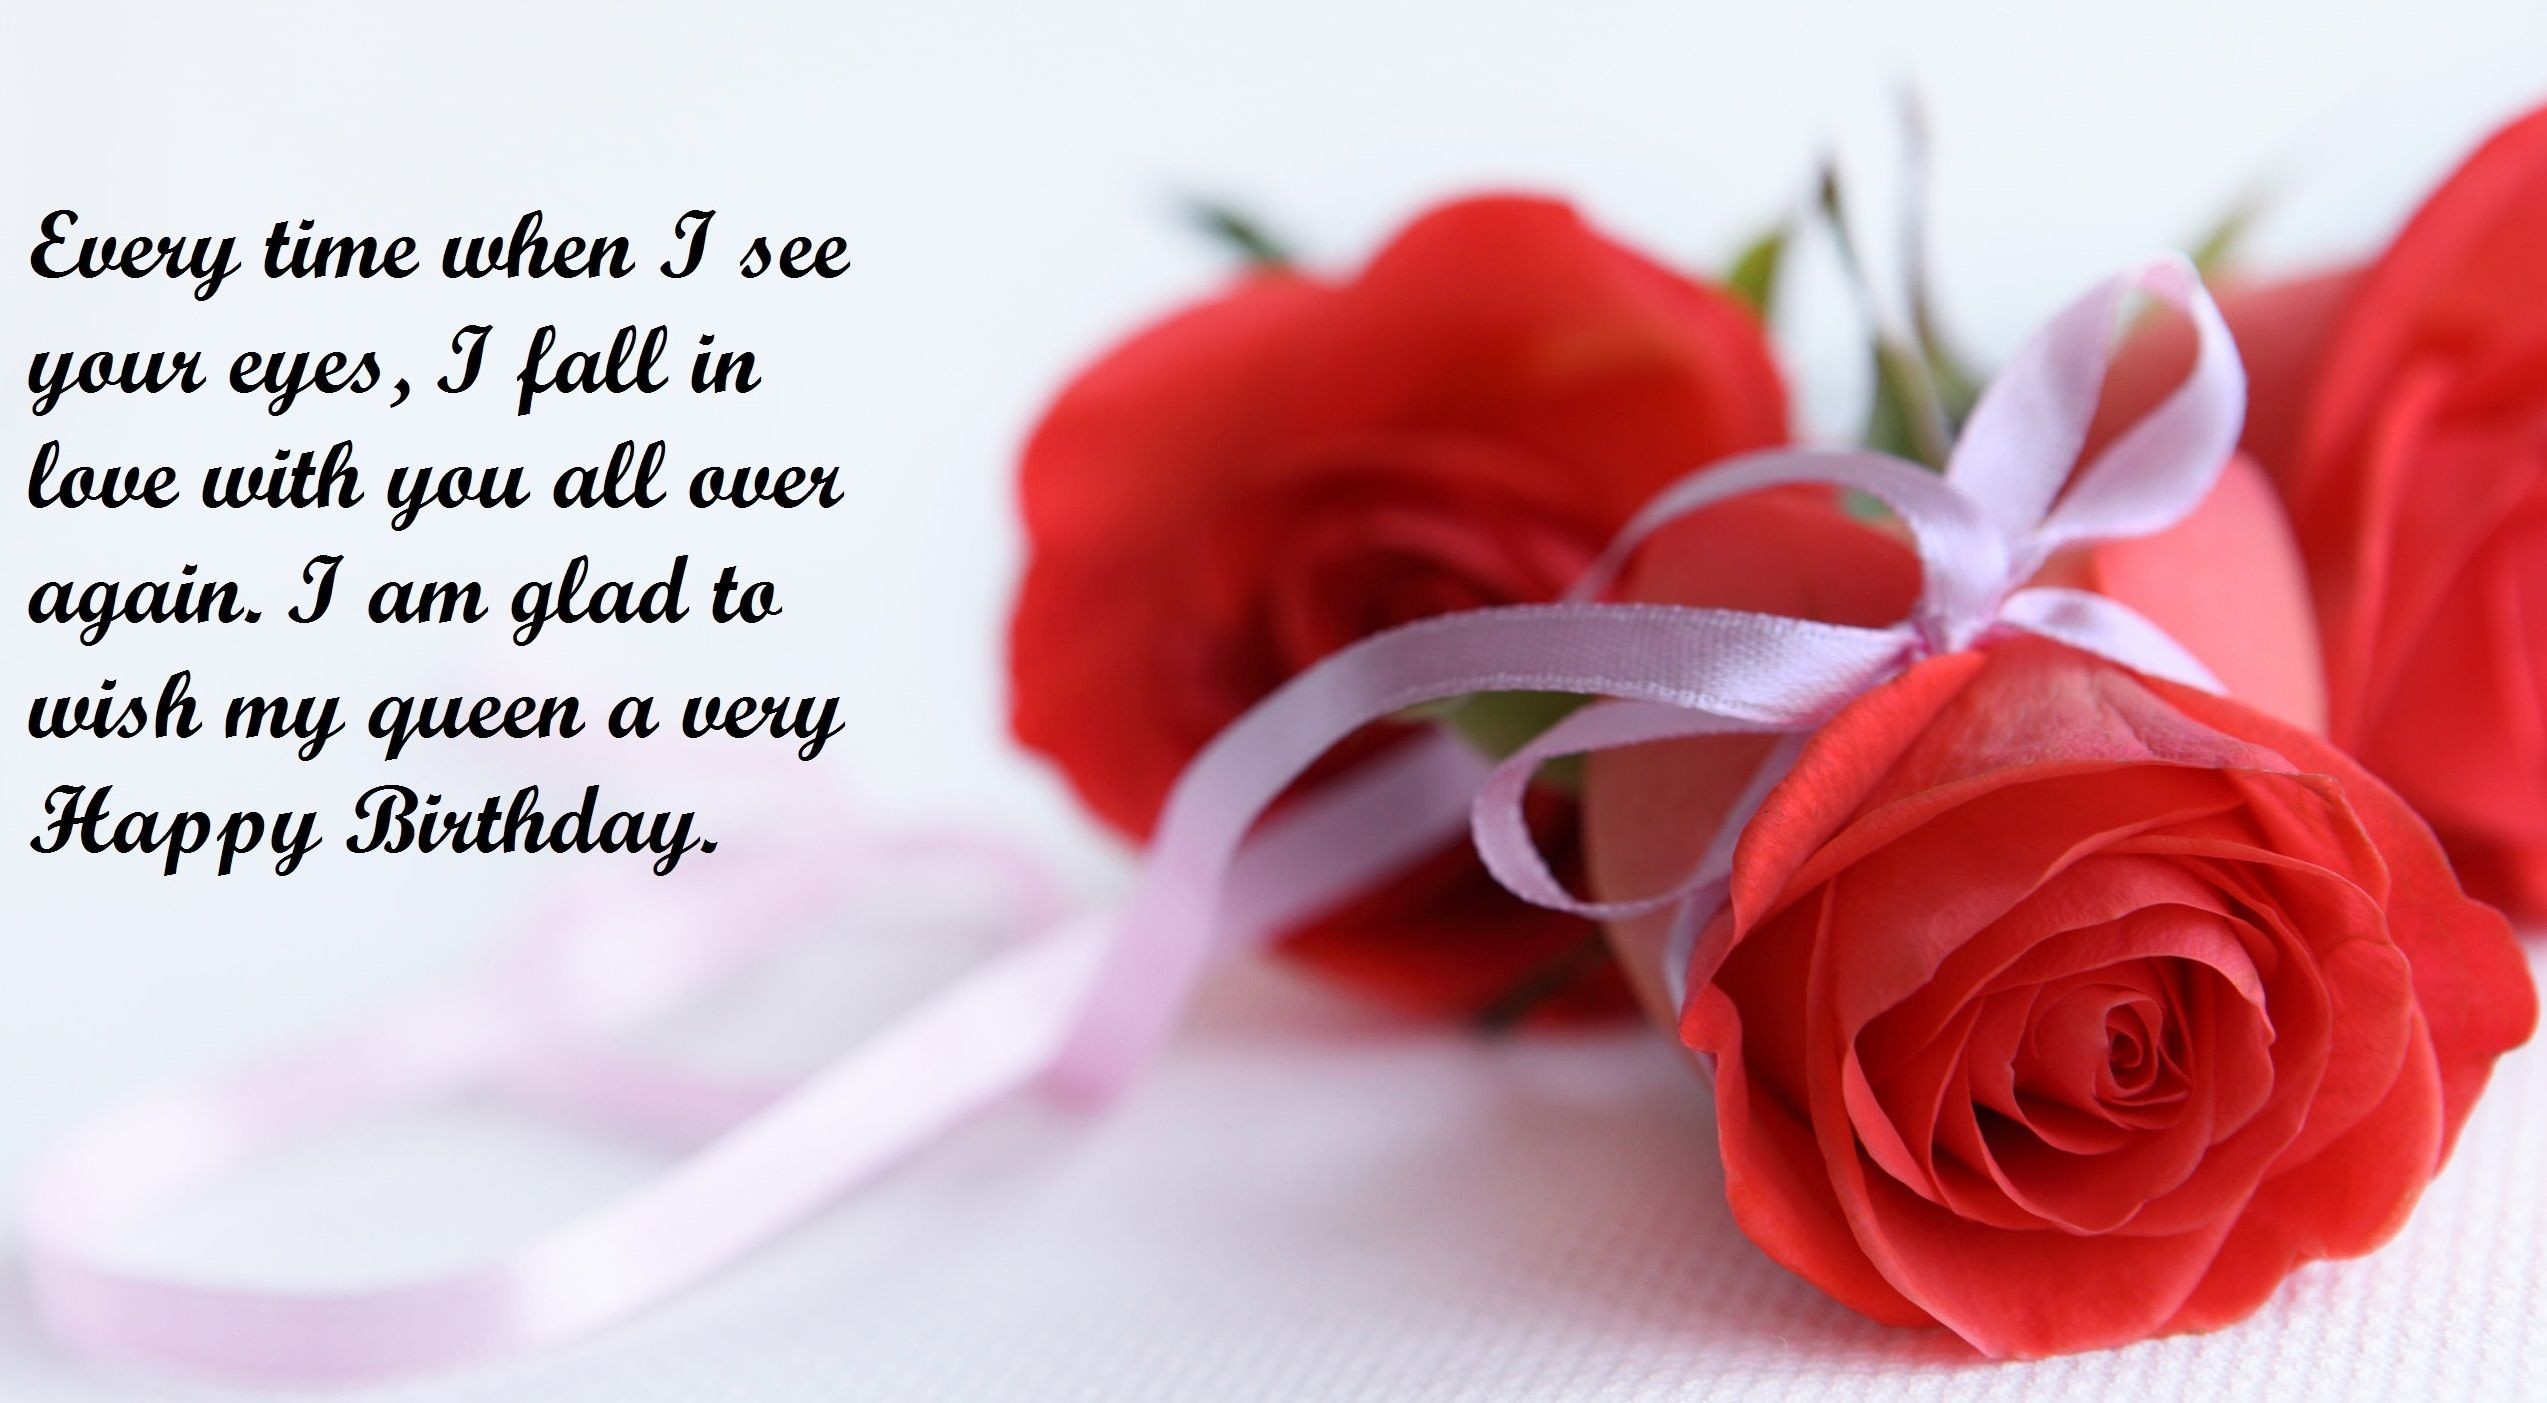 Happy birthday wishes for girlfriend rose quotes